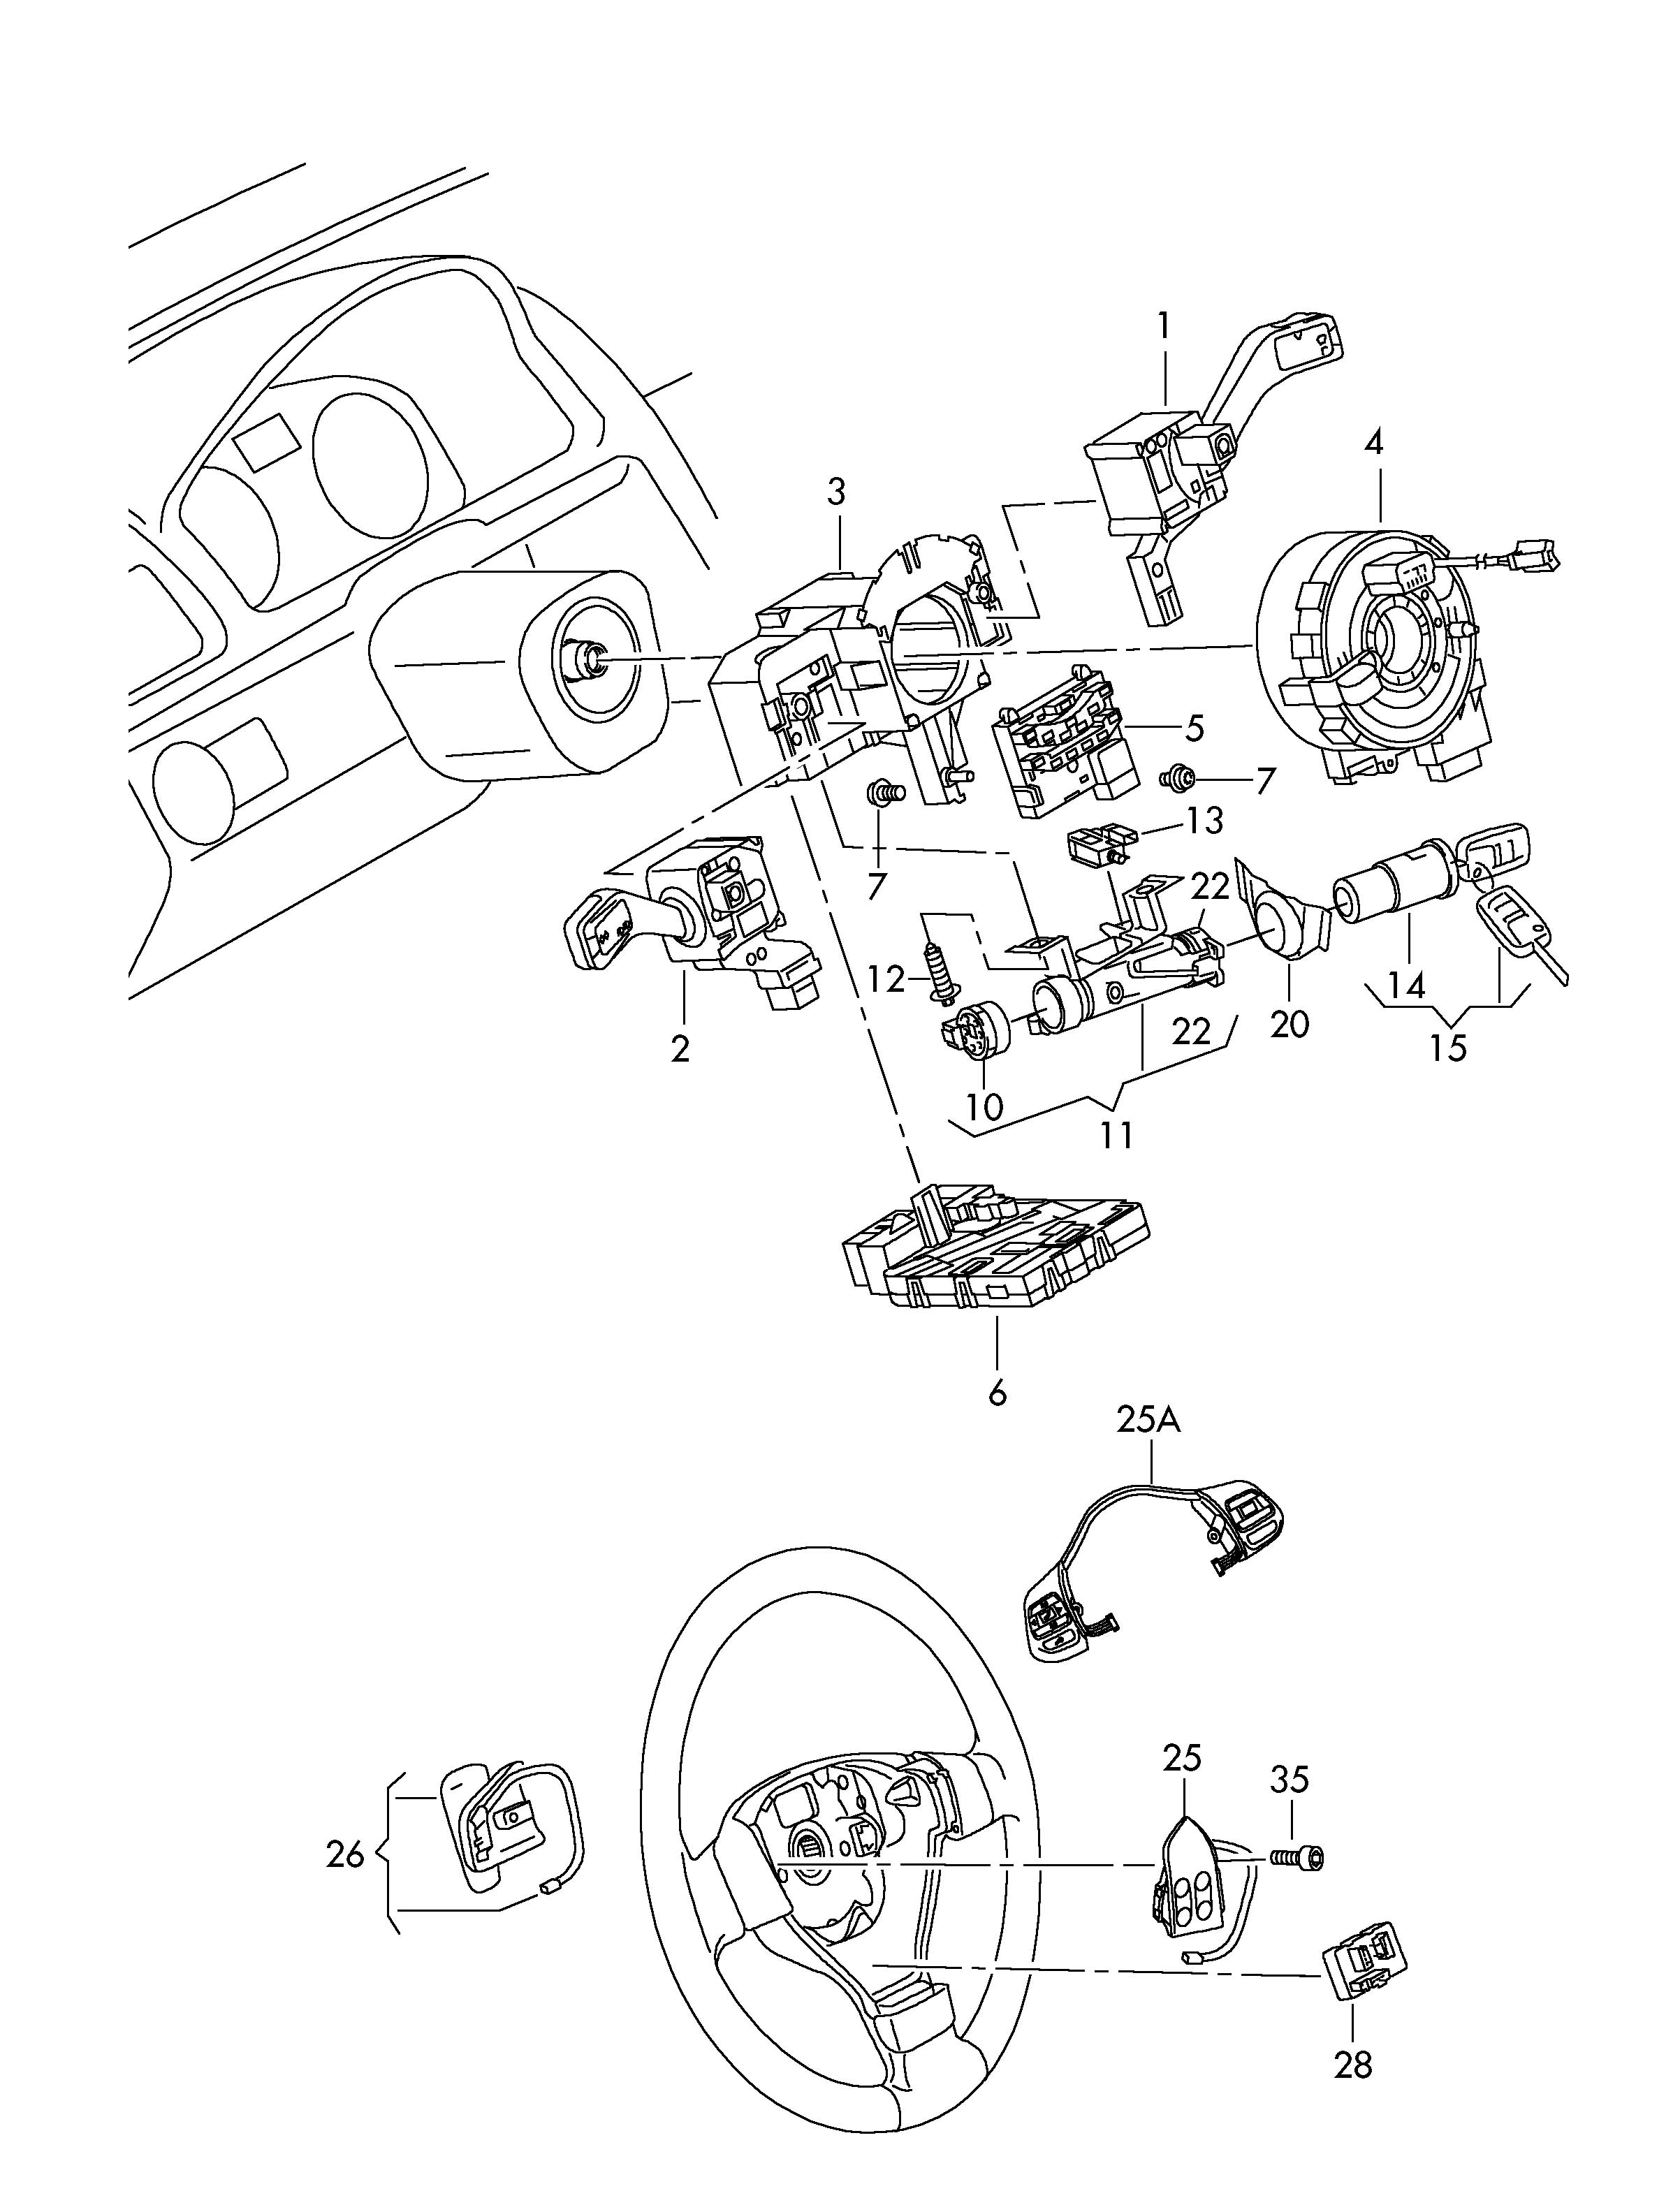 1981 Vw Rabbit Wiring Harness - Auto Electrical Wiring Diagram Rabbit Wiring Harness on